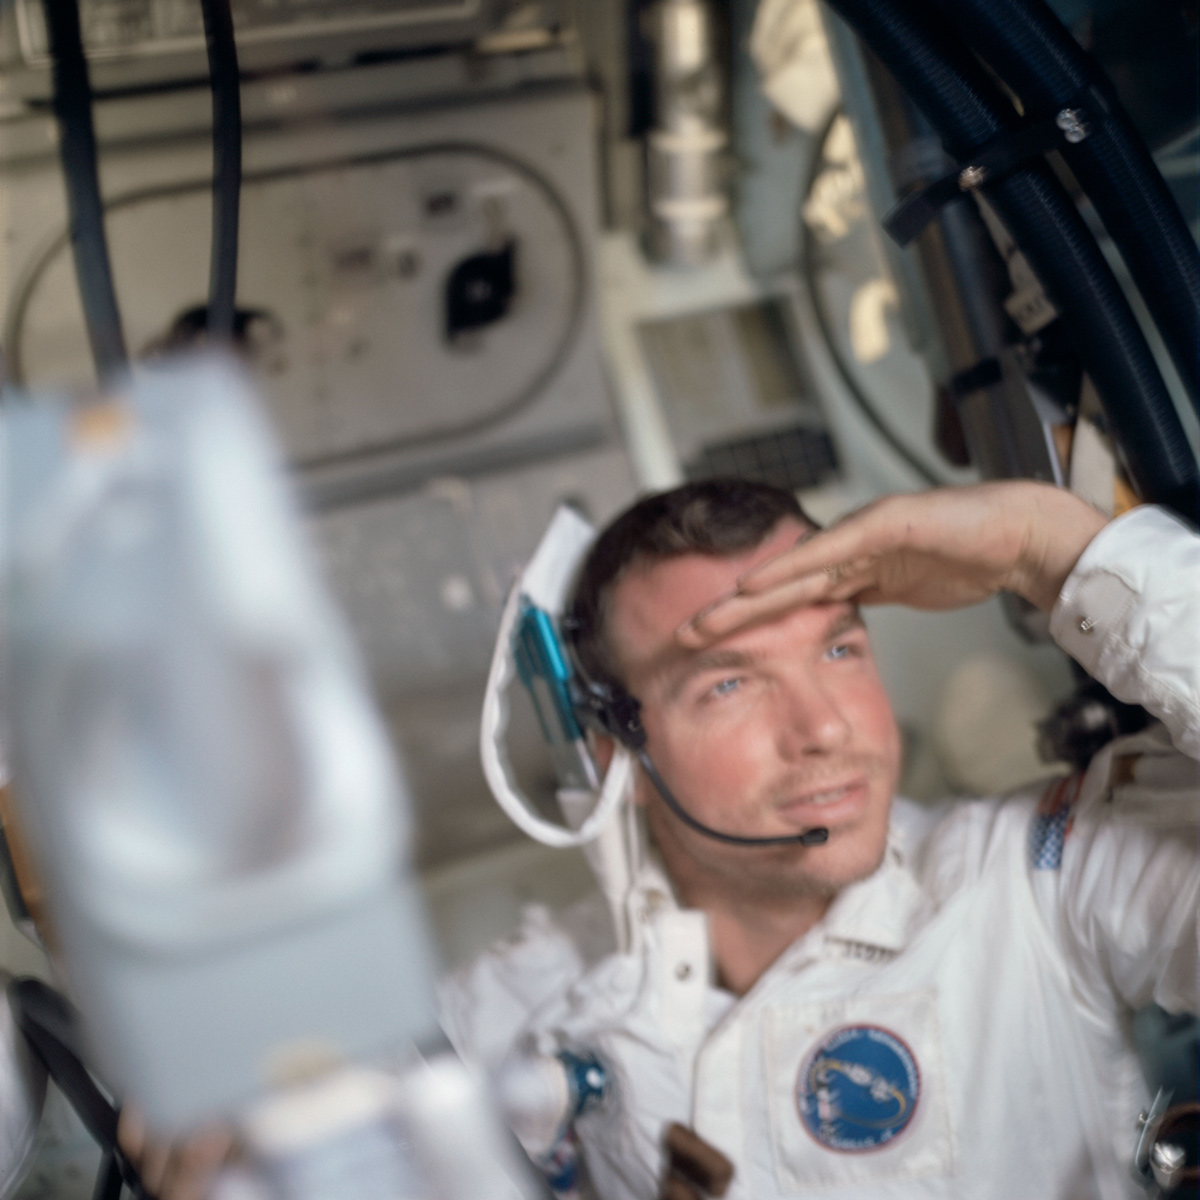 Astronaut in main cabin of Apollo 9 Command Module